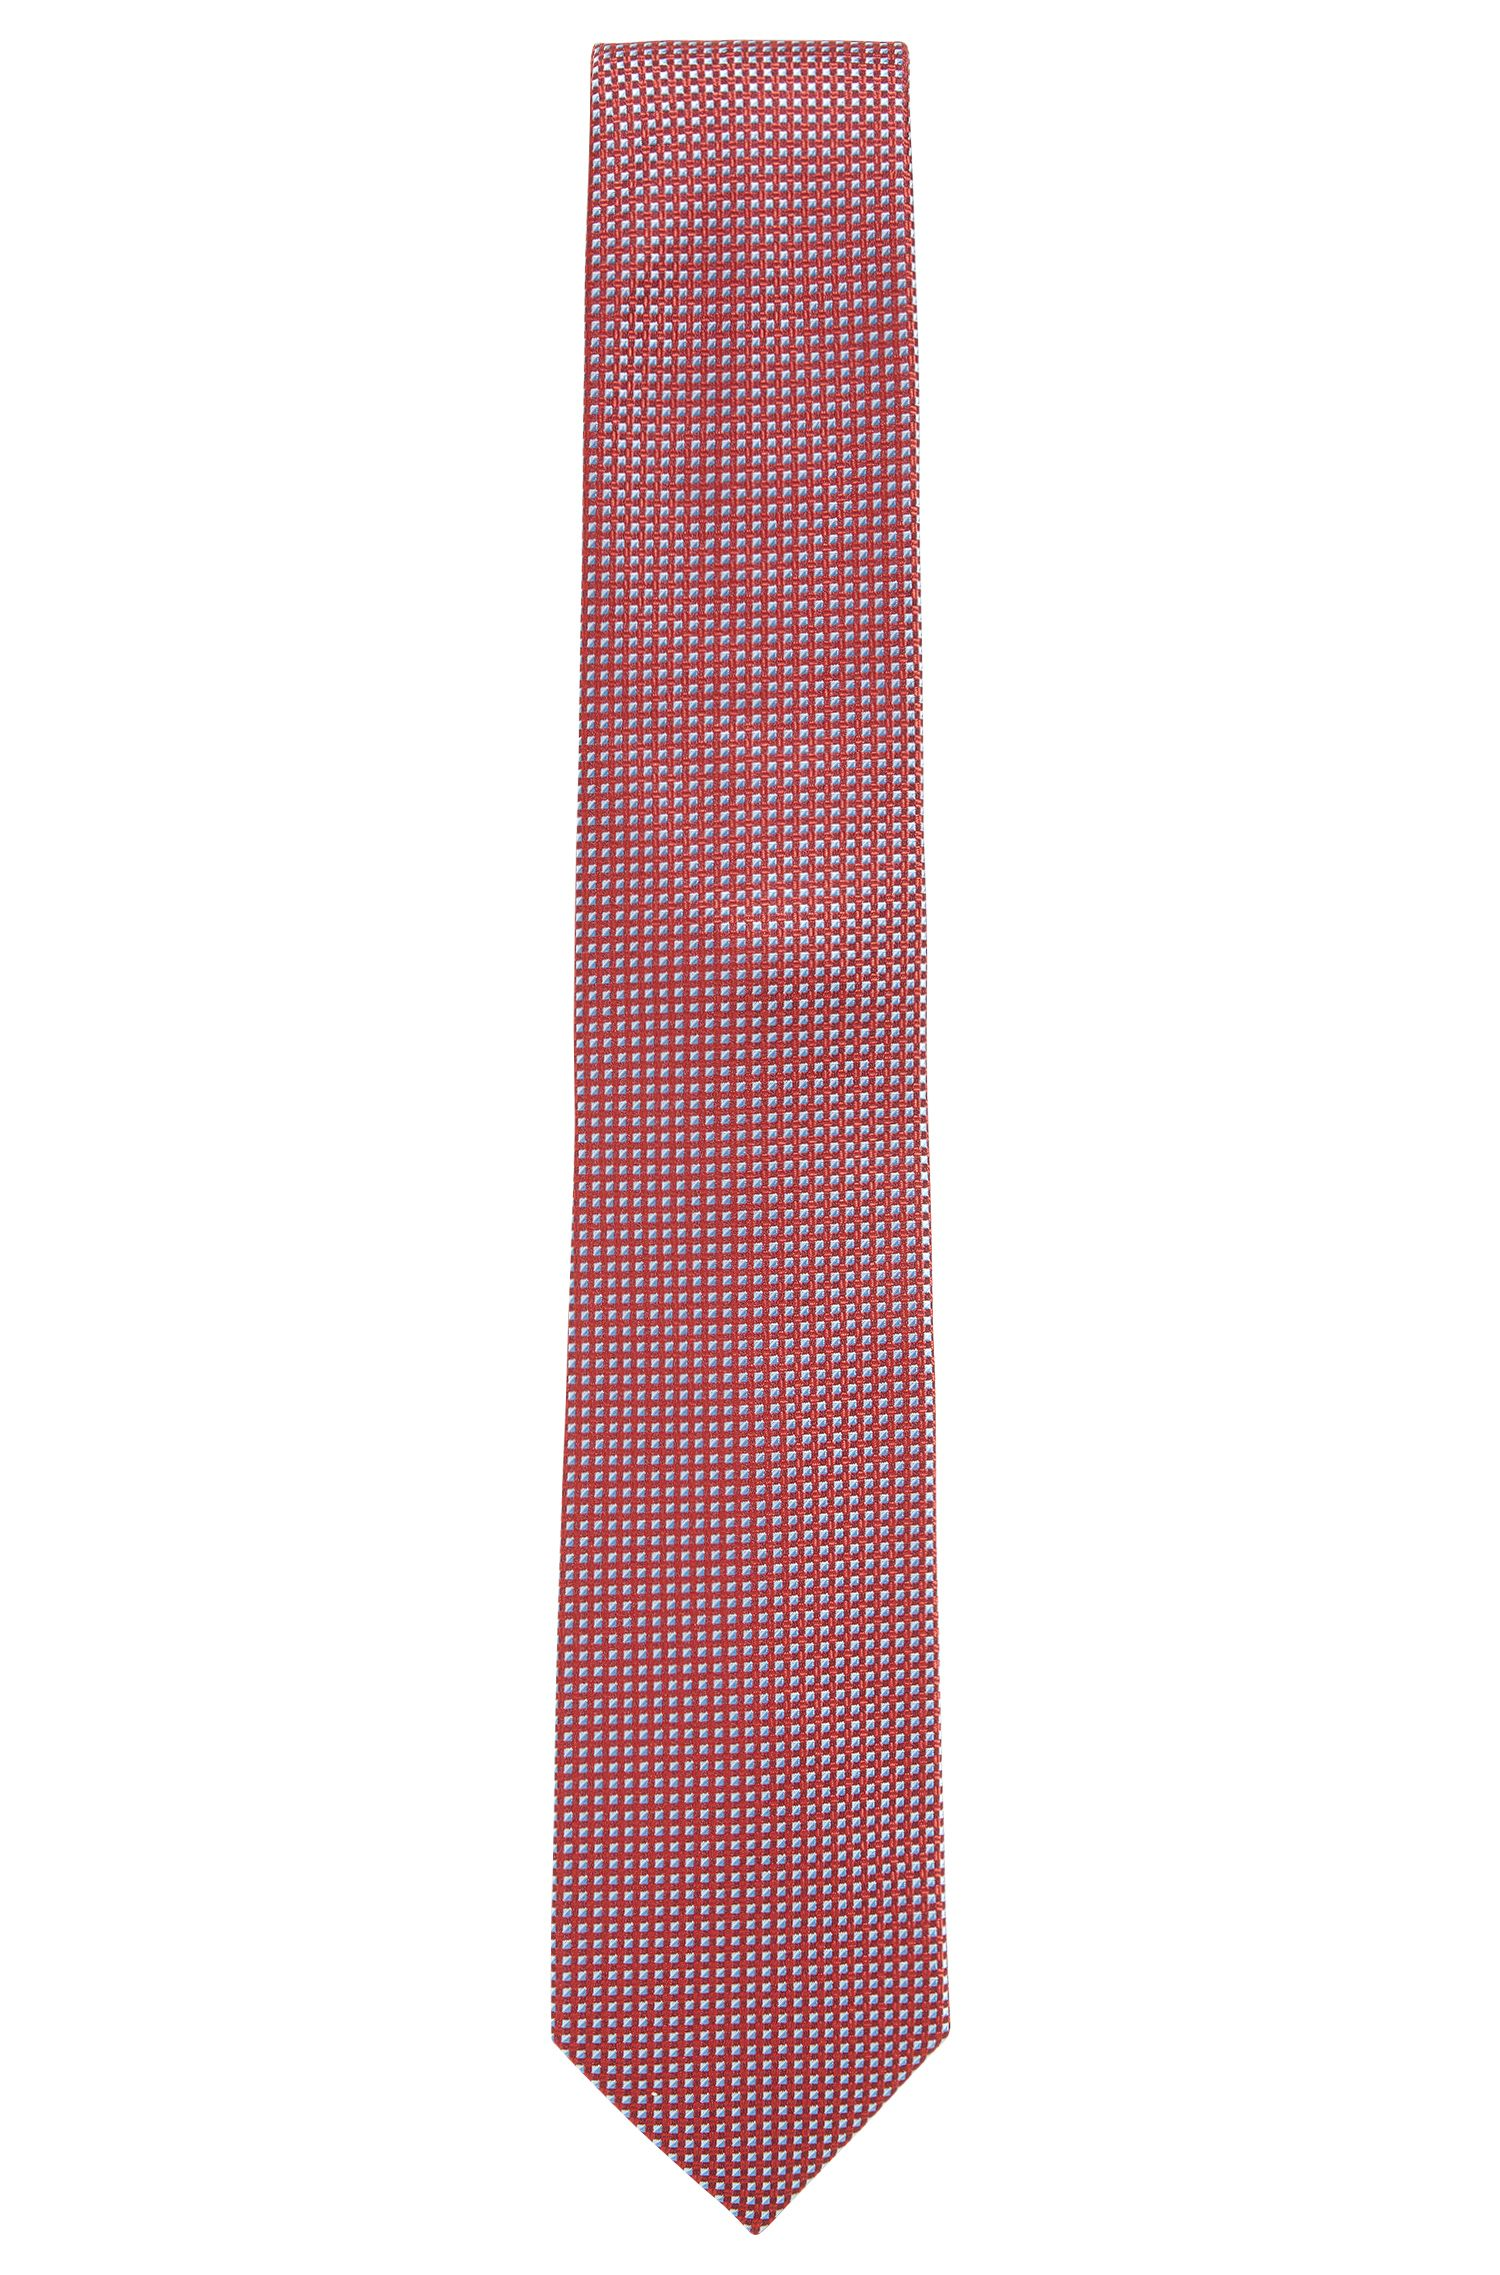 Nailhead Italian Silk Tie, Red